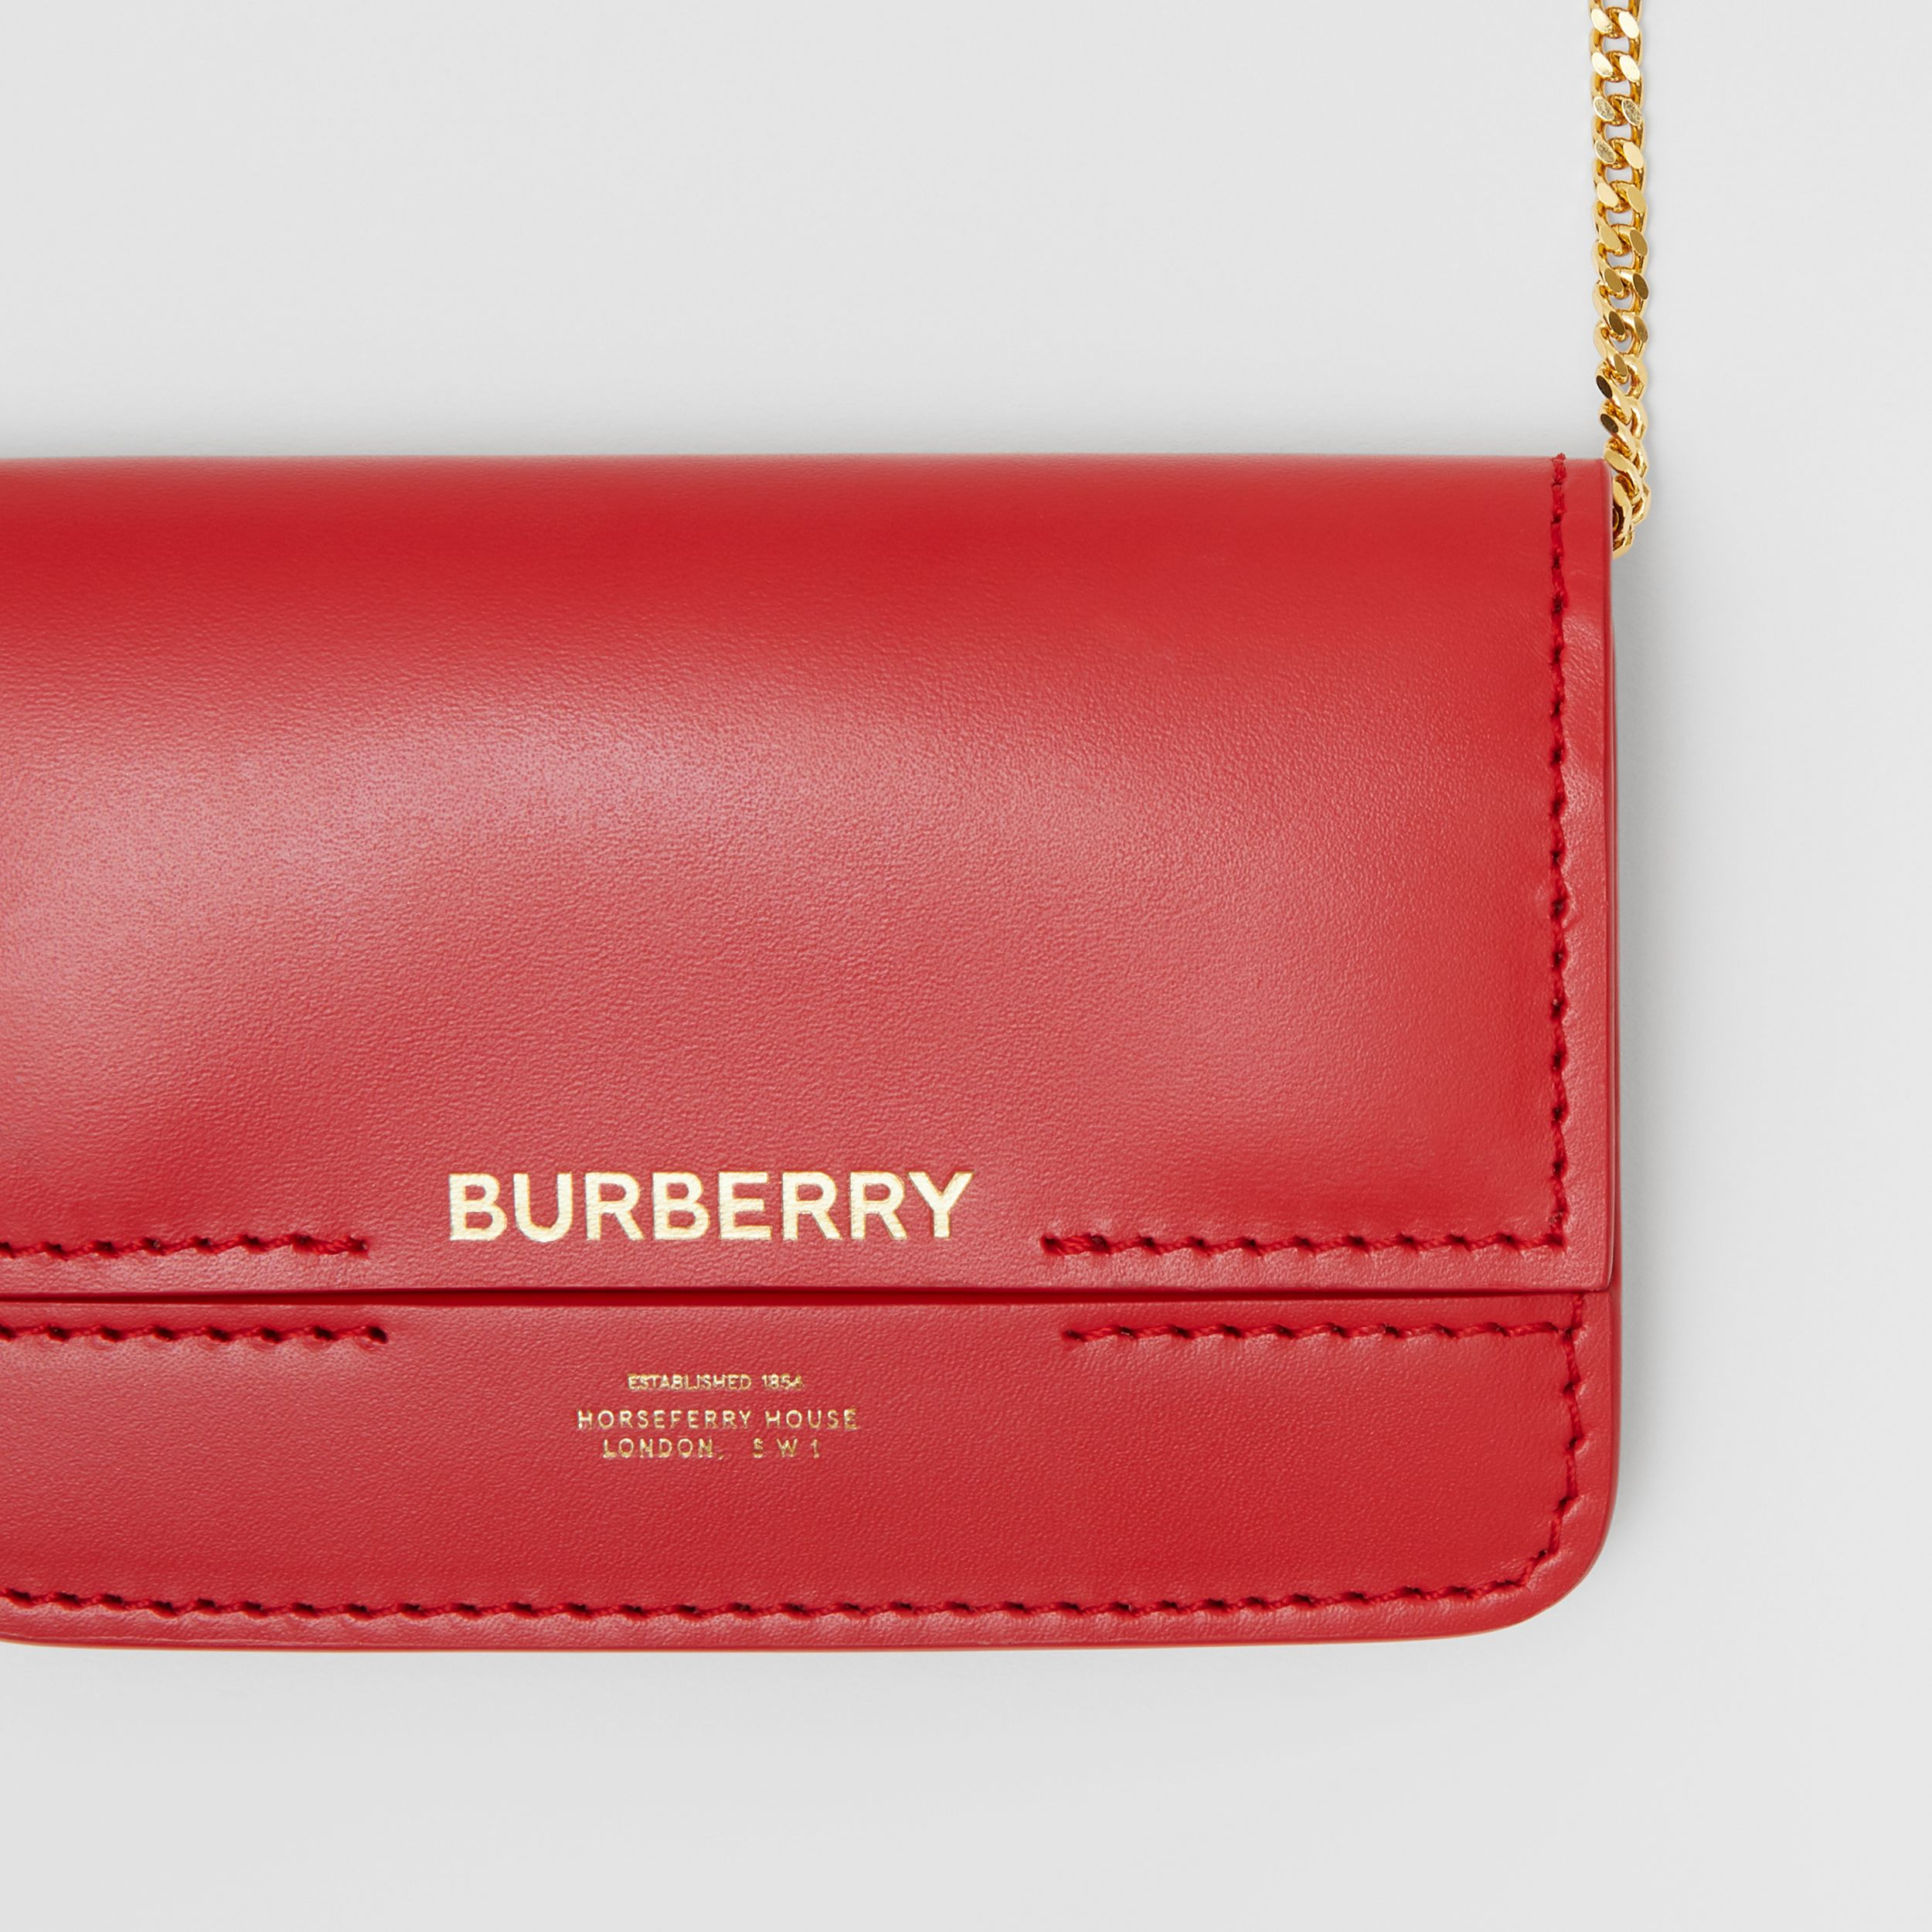 Two-tone Leather Card Case with Chain Strap in Red | Burberry - 2